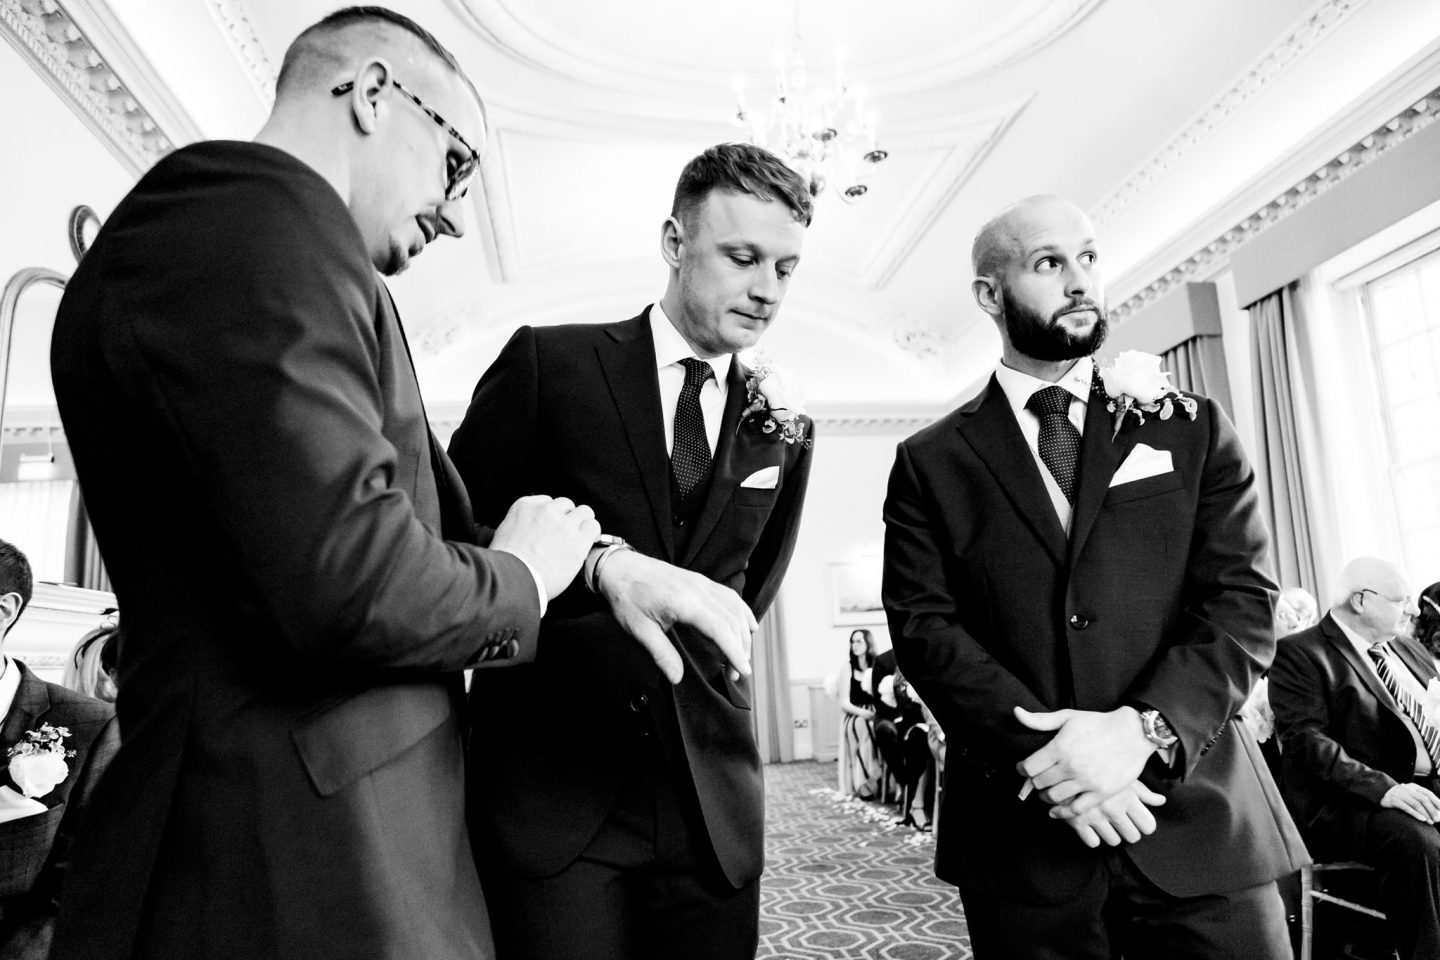 Groom and groomsmen waiting before the ceremony - Image courtesy of Kevin Lines Photography Hertfordshire